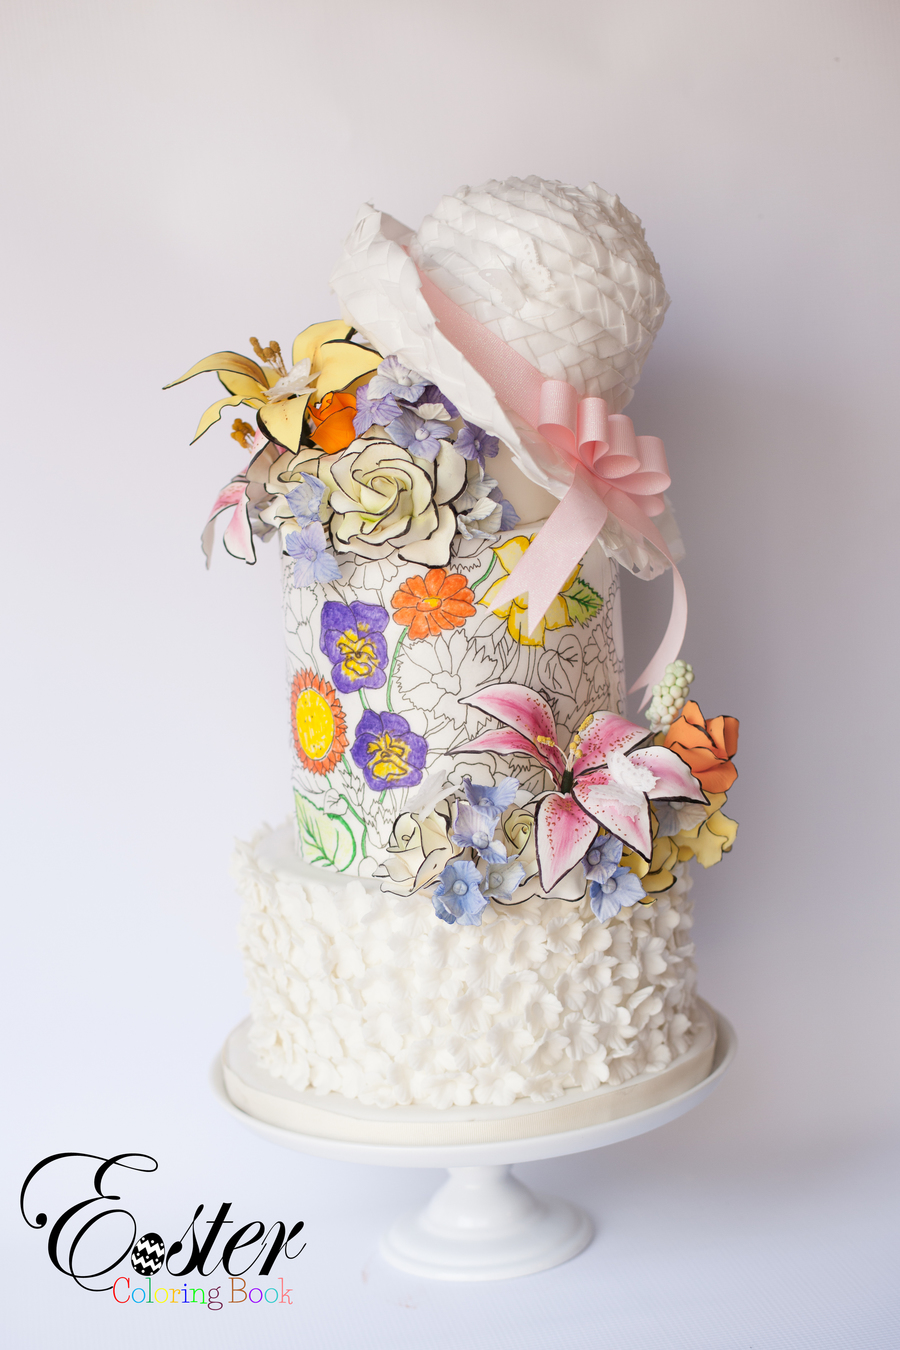 The Easter Bonnet Easter Coloring Book Cake Collaboration